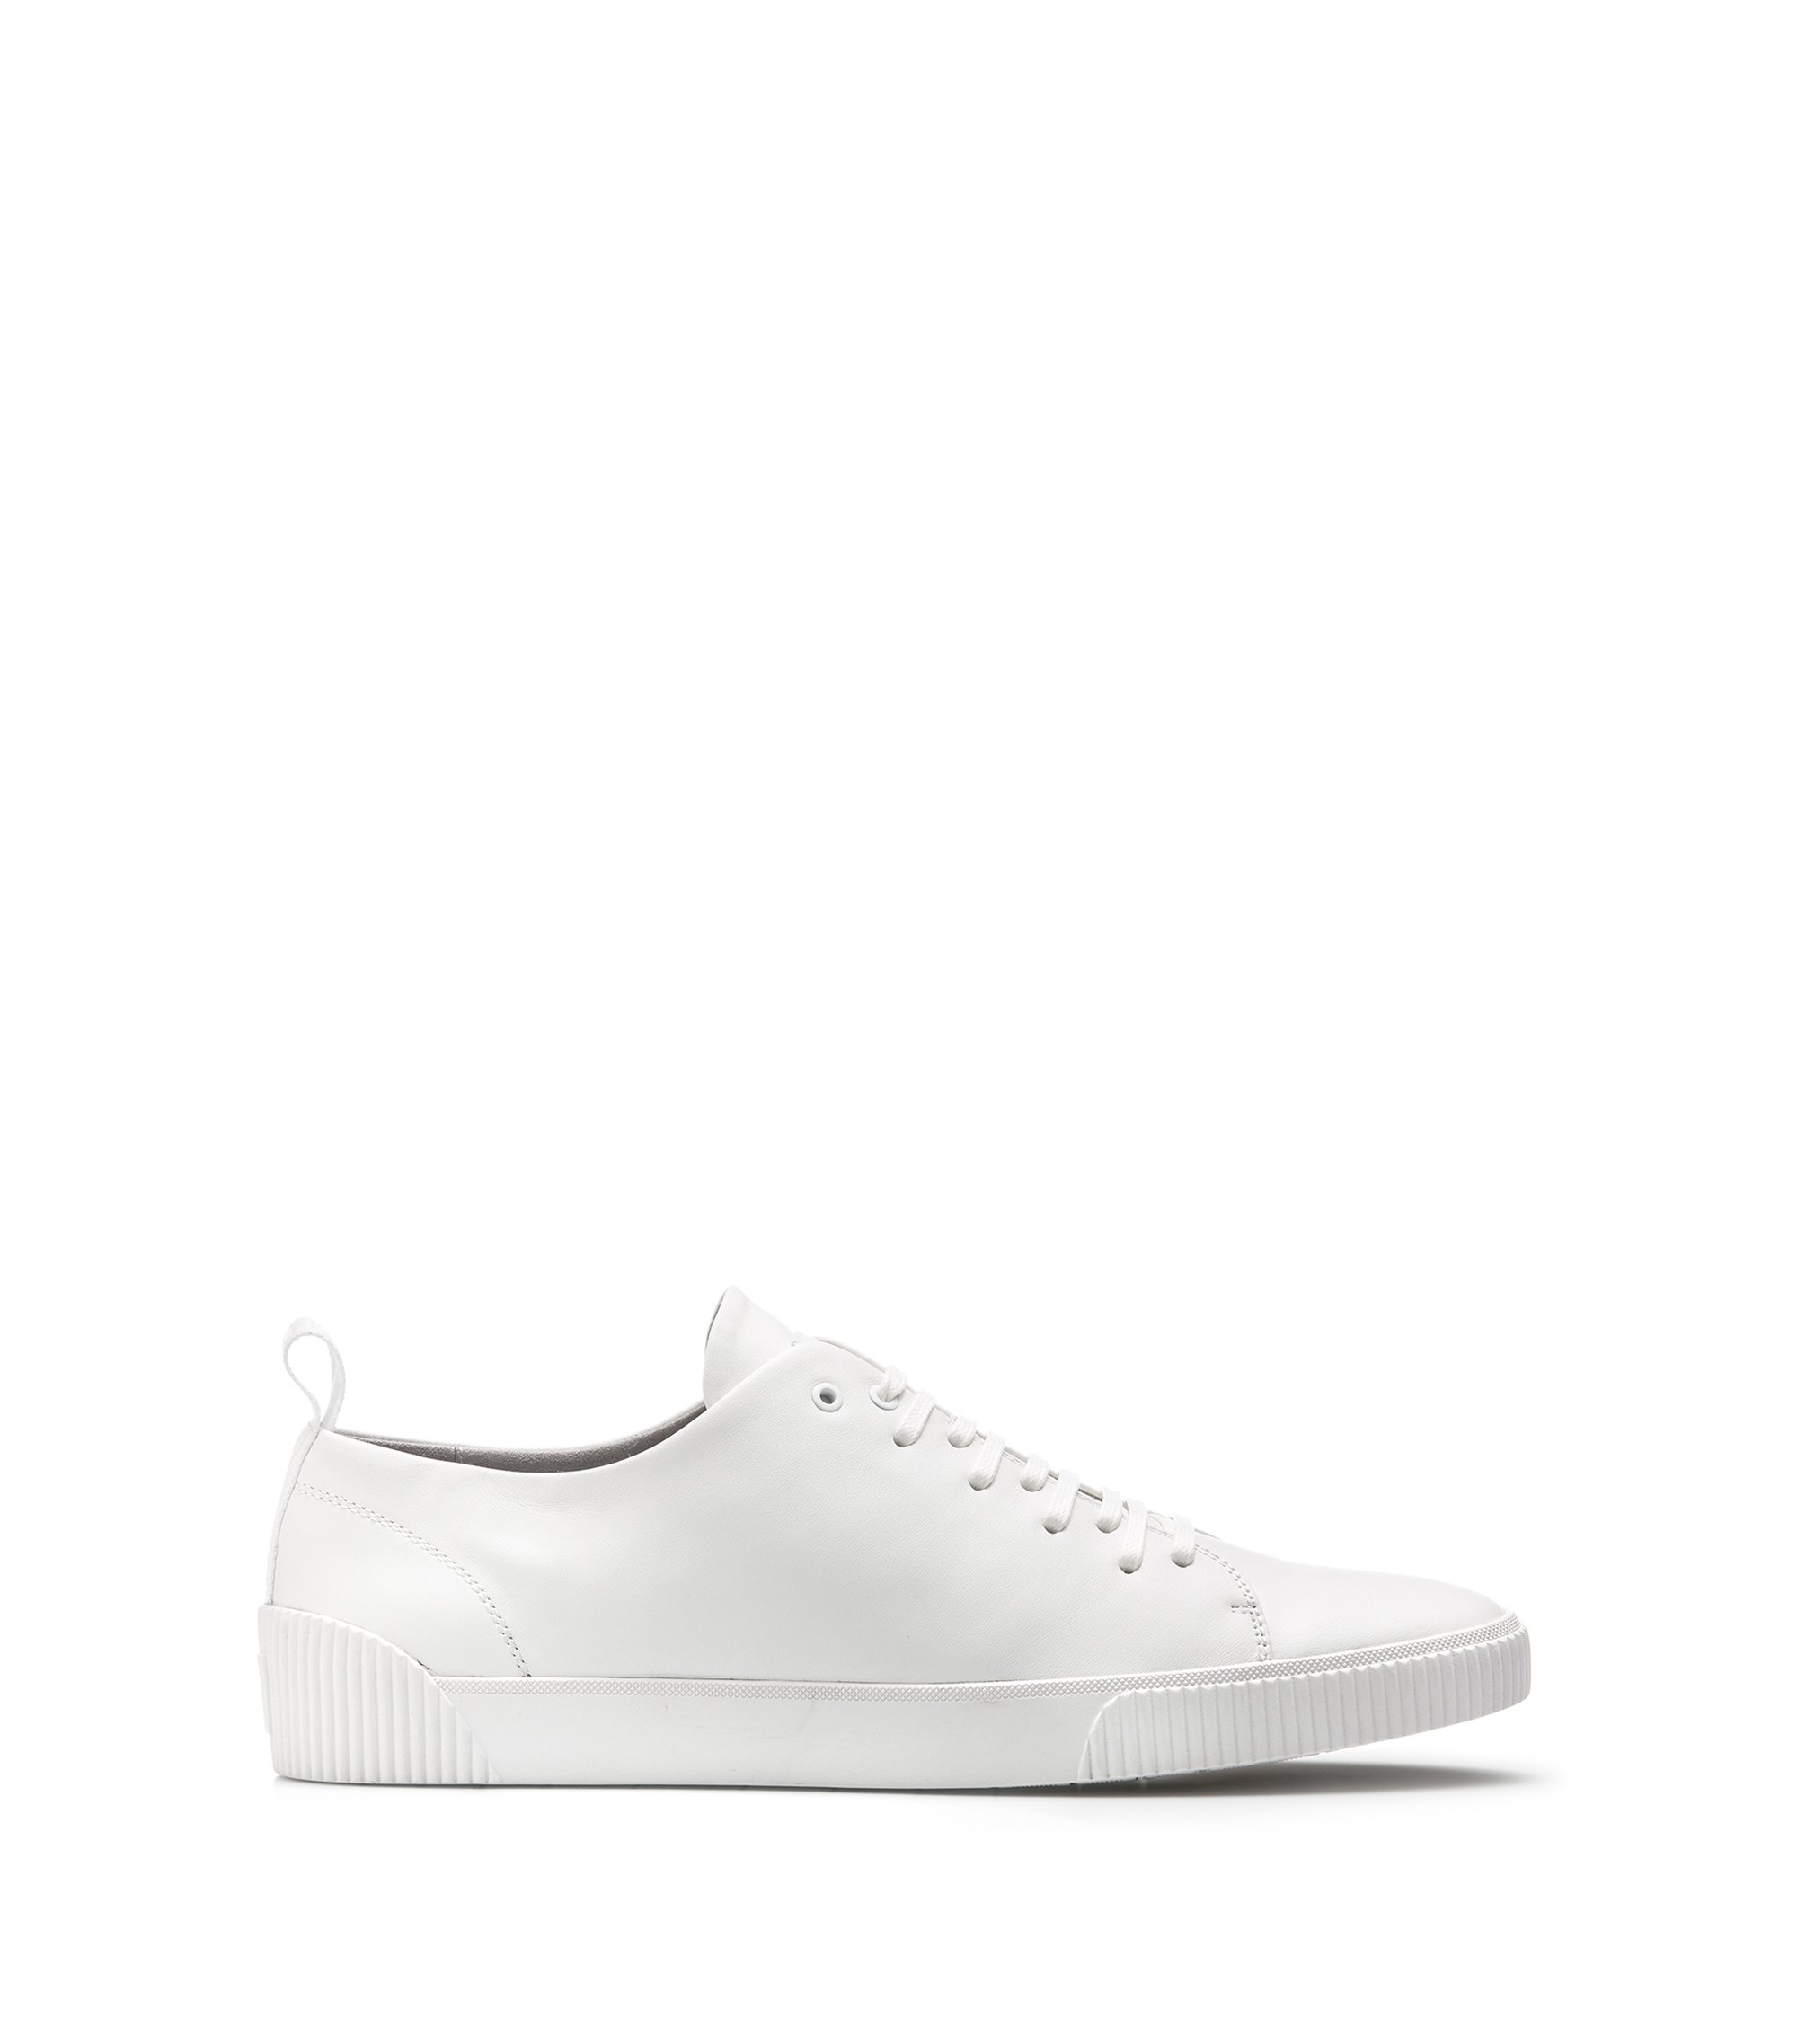 Low-top trainers in nappa leather with logo detail, White